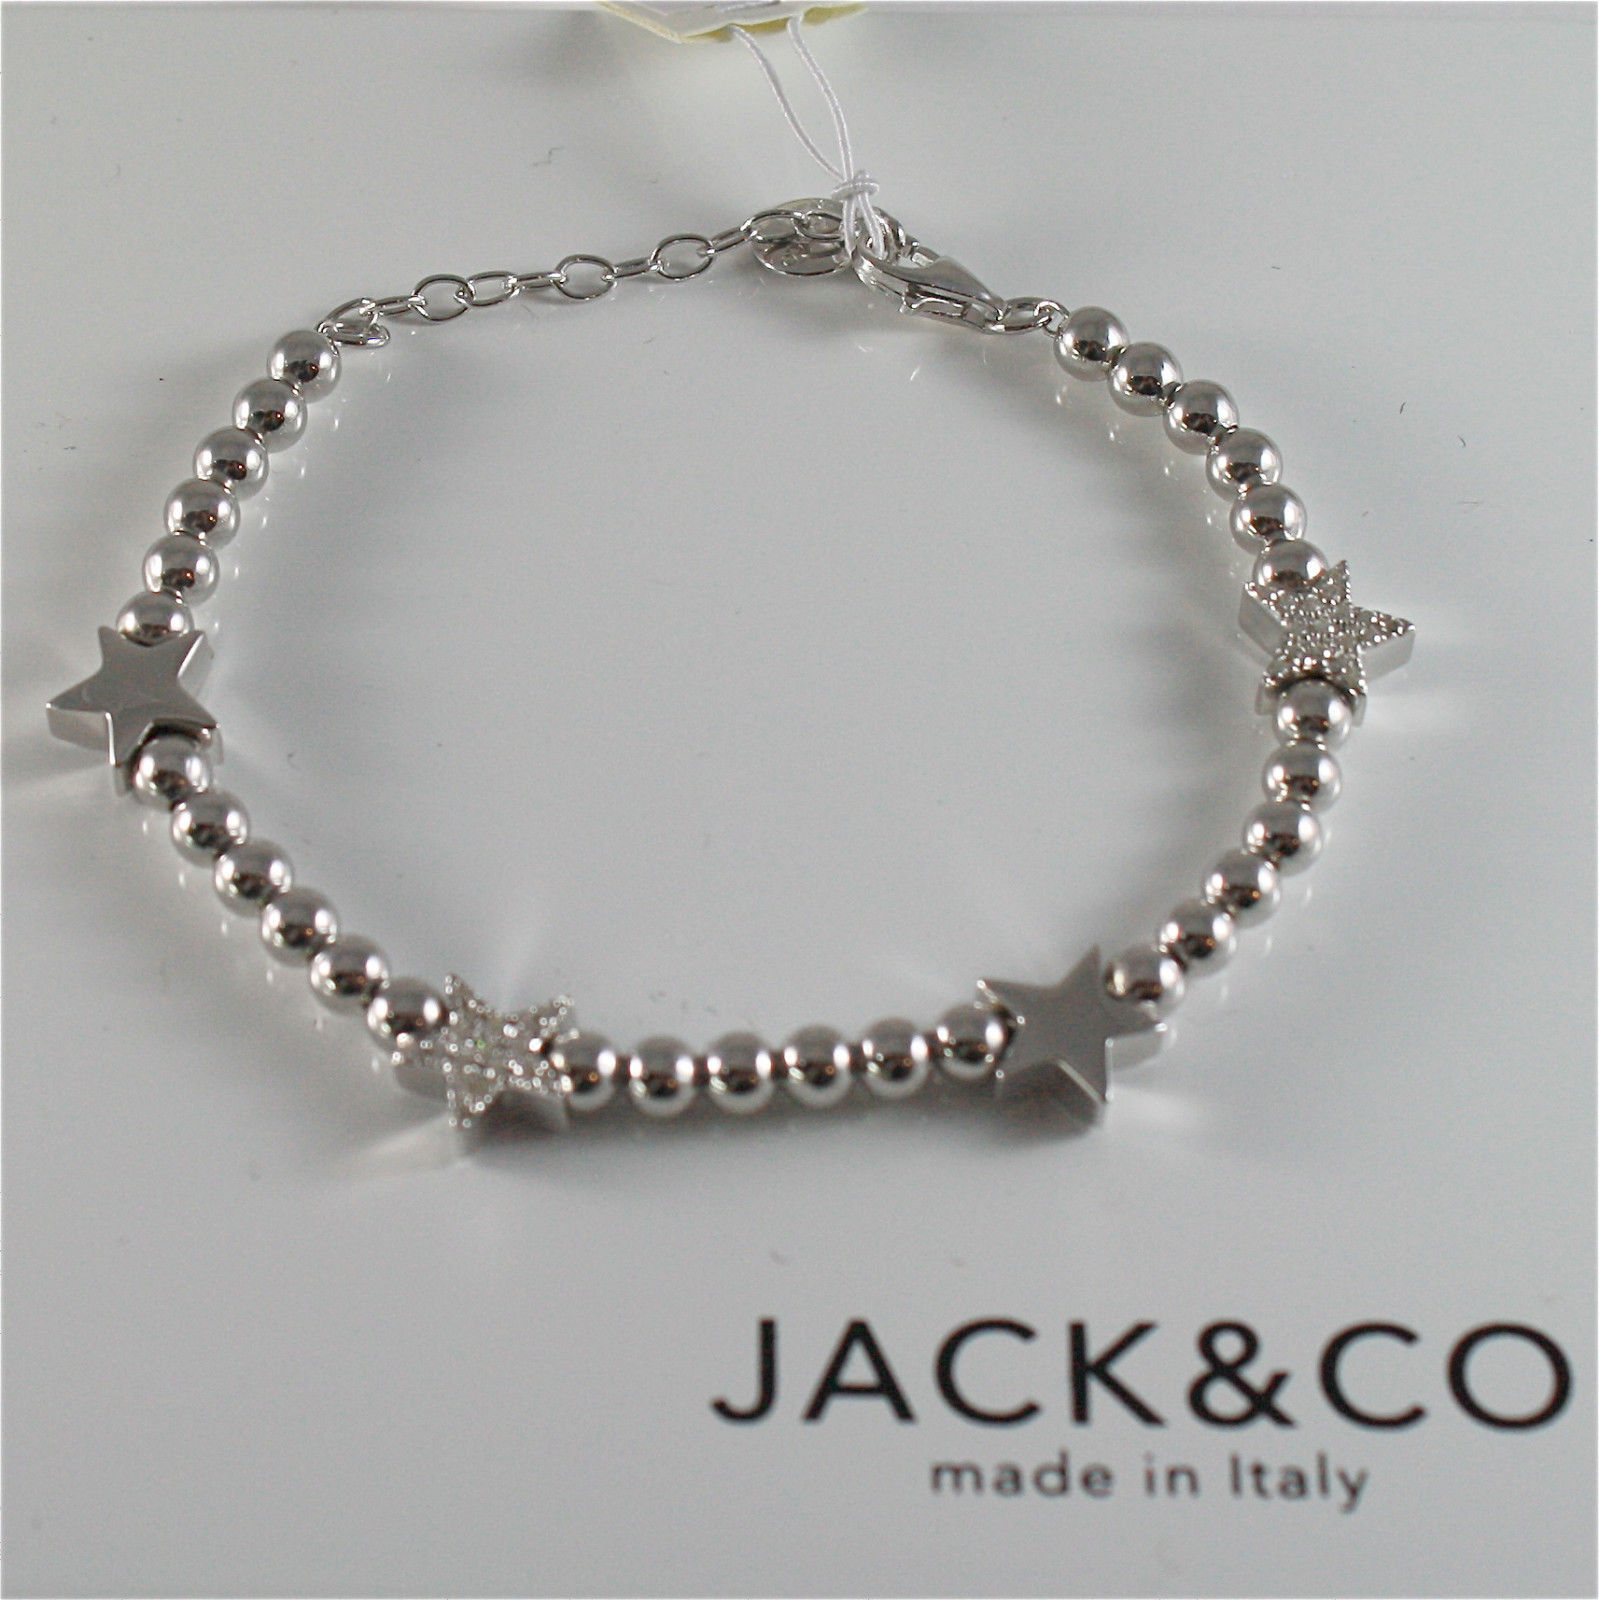 925 RHODIUM SILVER JACK&CO BRACELET WITH SHINY STAR STARLET MADE IN ITALY 7.2 IN